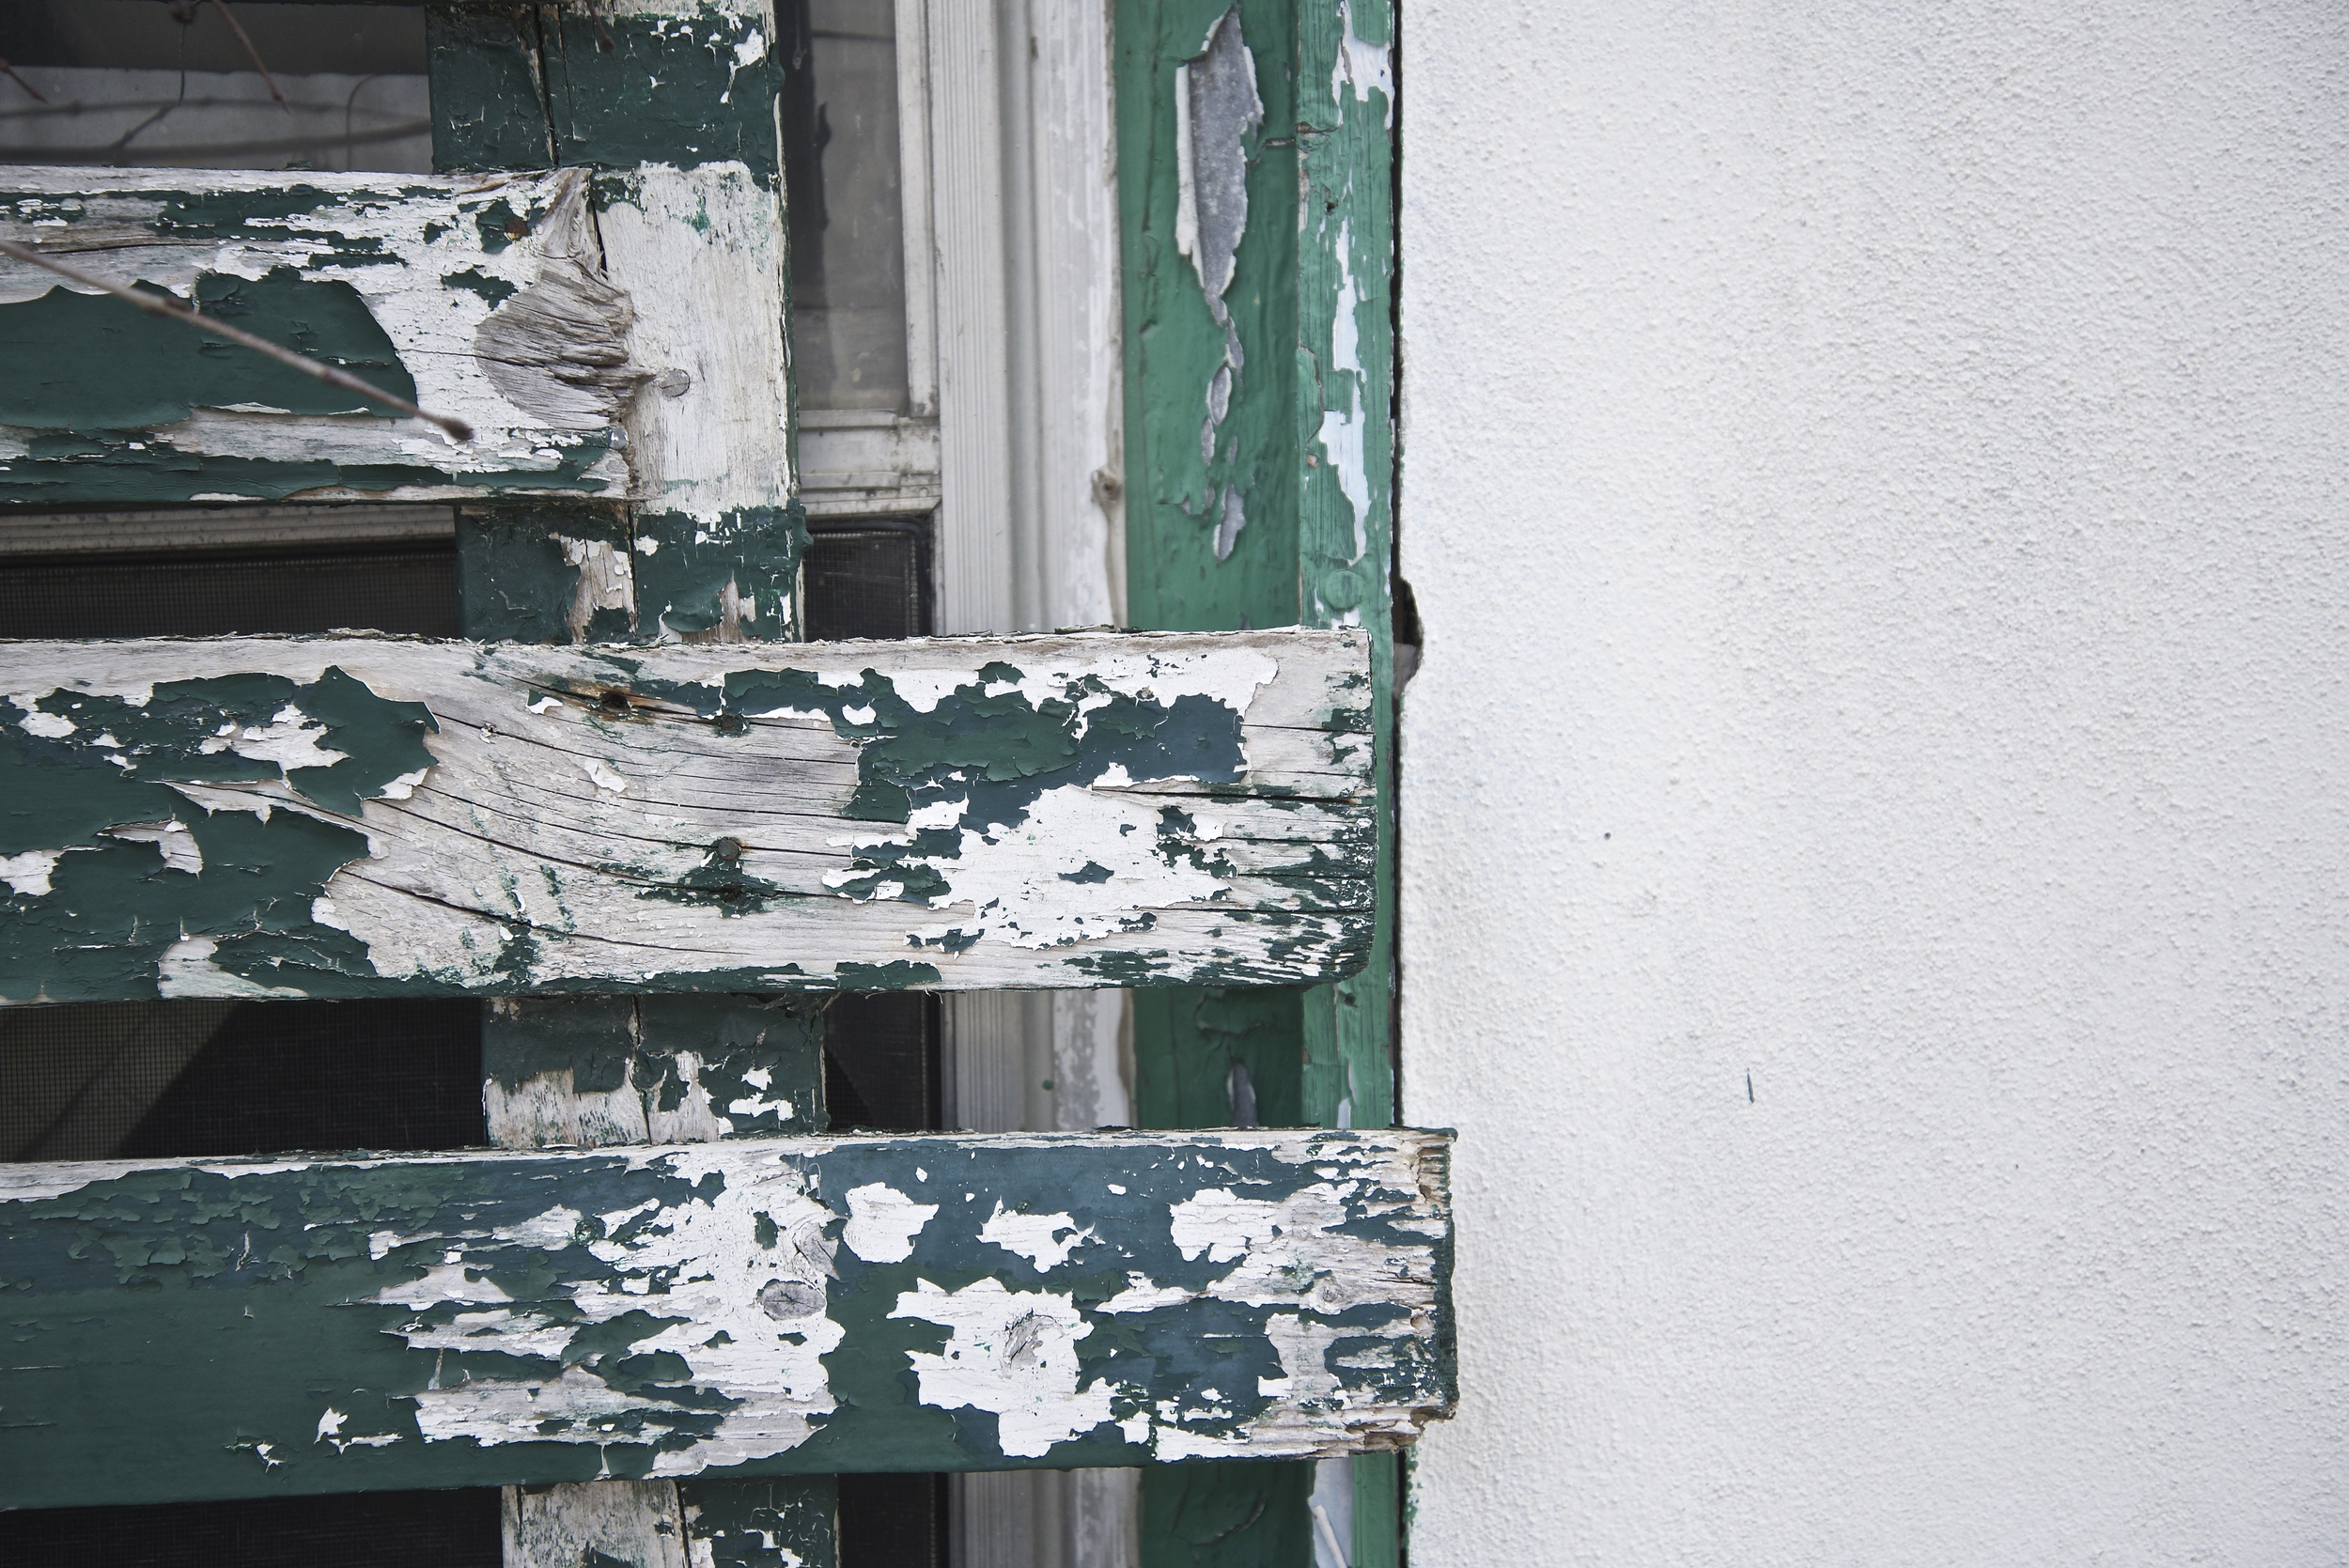 The green shutters on this house are in need of a new coat of paint...but the green is what caught my eye.